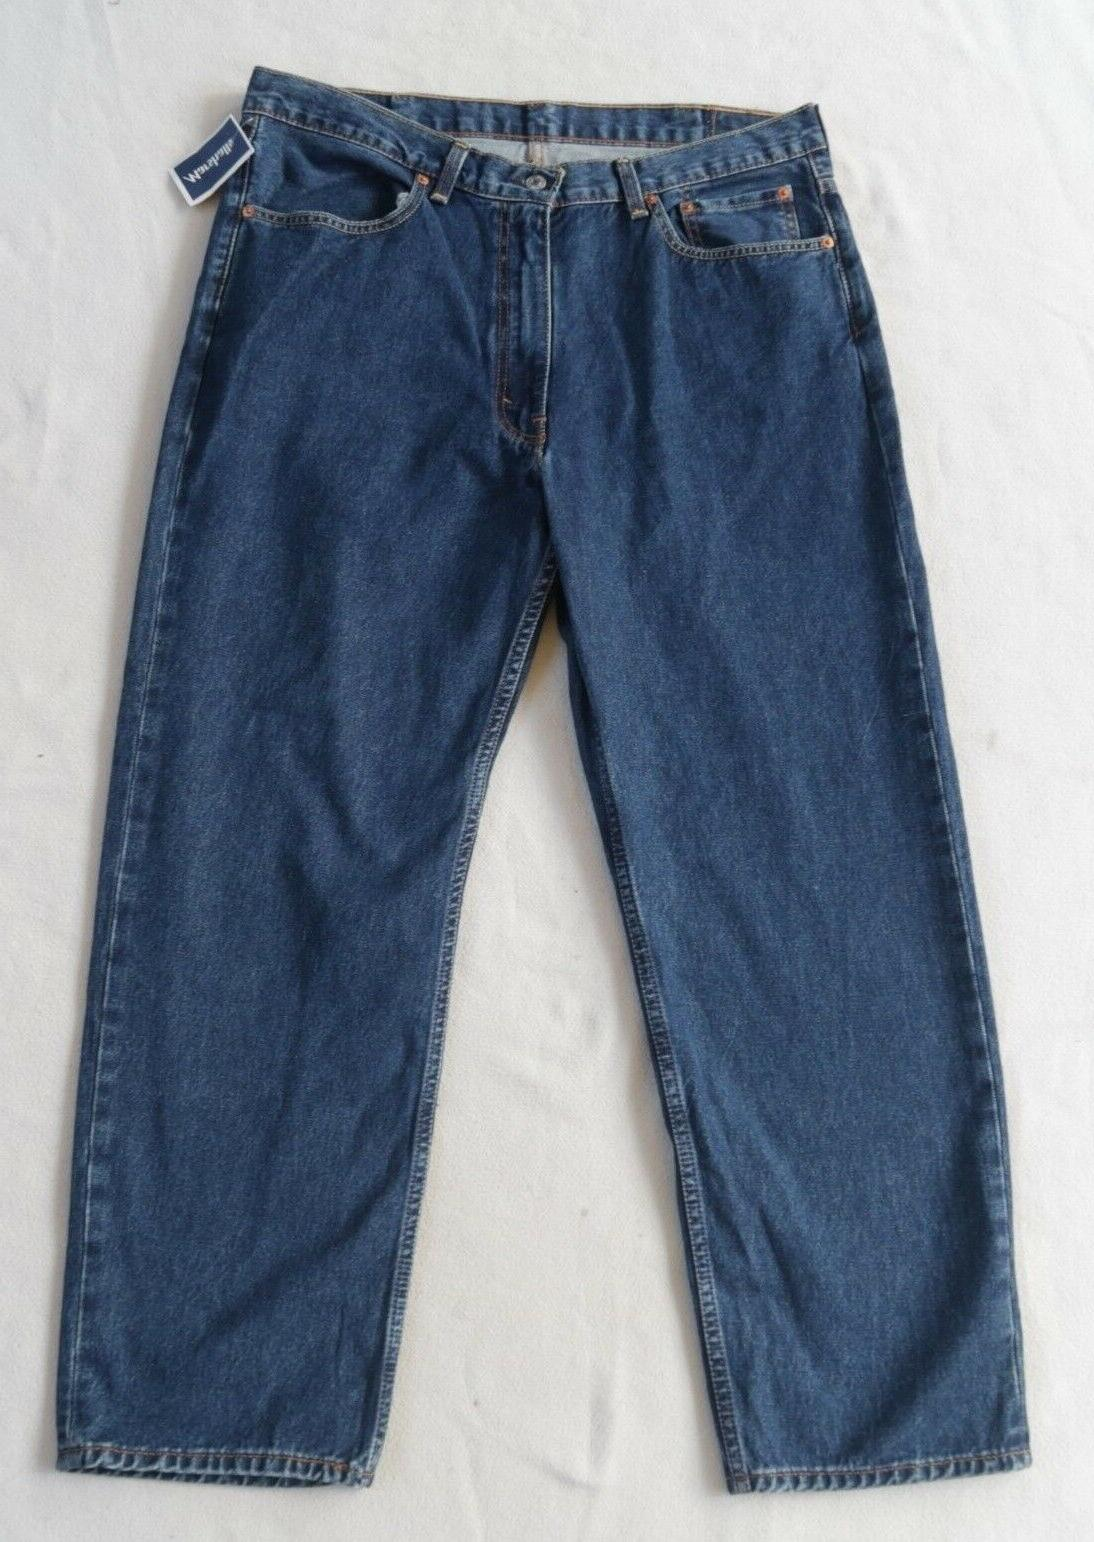 514 Straight Jeans - 38x29